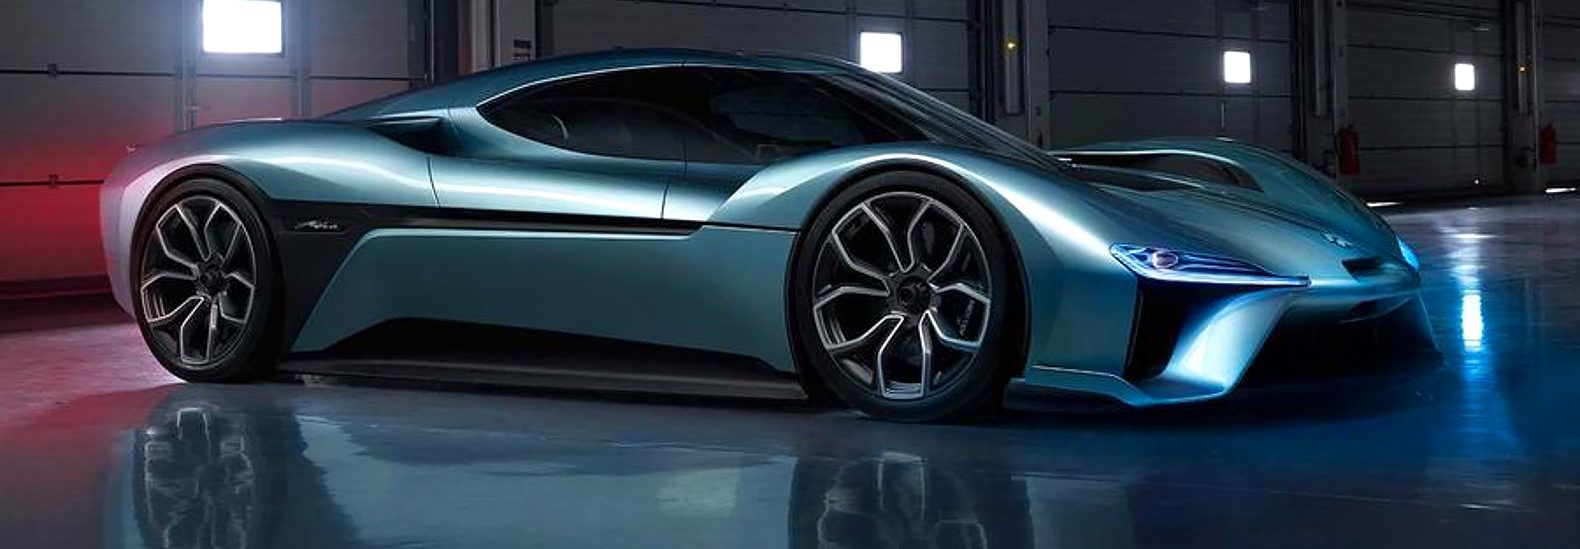 Introducing The Fastest Electric Car In The World Car In The World Best Luxury Sports Car Car